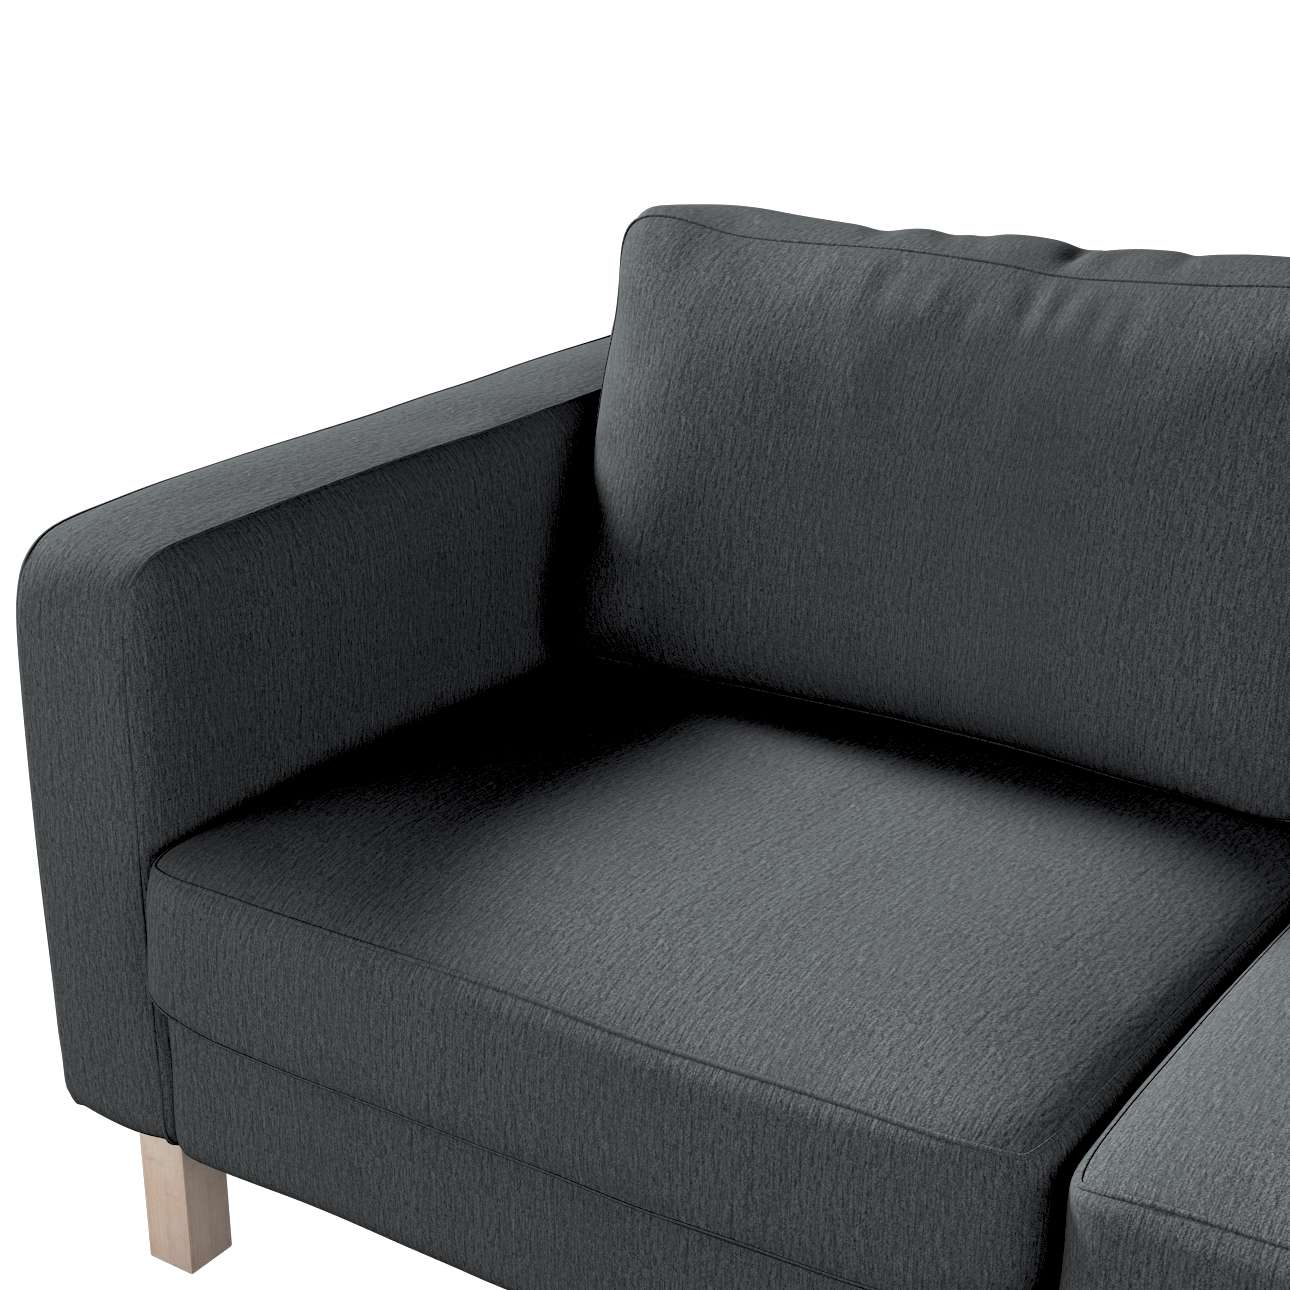 Karlstad 2-seater sofa cover in collection Chenille, fabric: 702-20